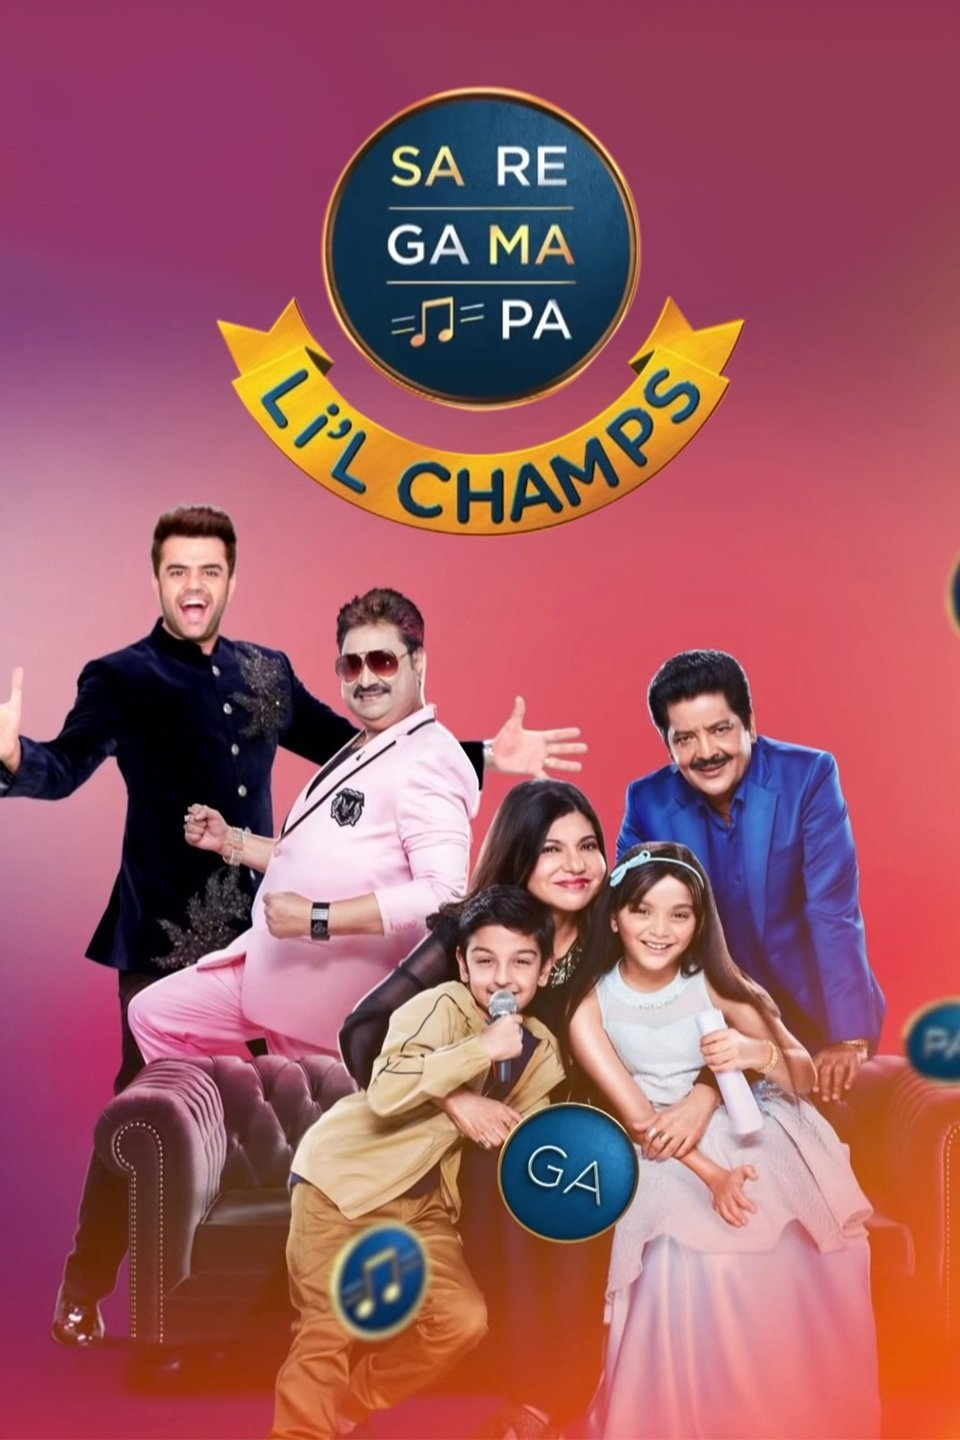 Kapil Sharma Khatron Ke Khiladi Made In India India Best Dancer Sa Re Ga Ma Pa Lil Champs 30th August 2020 All DL